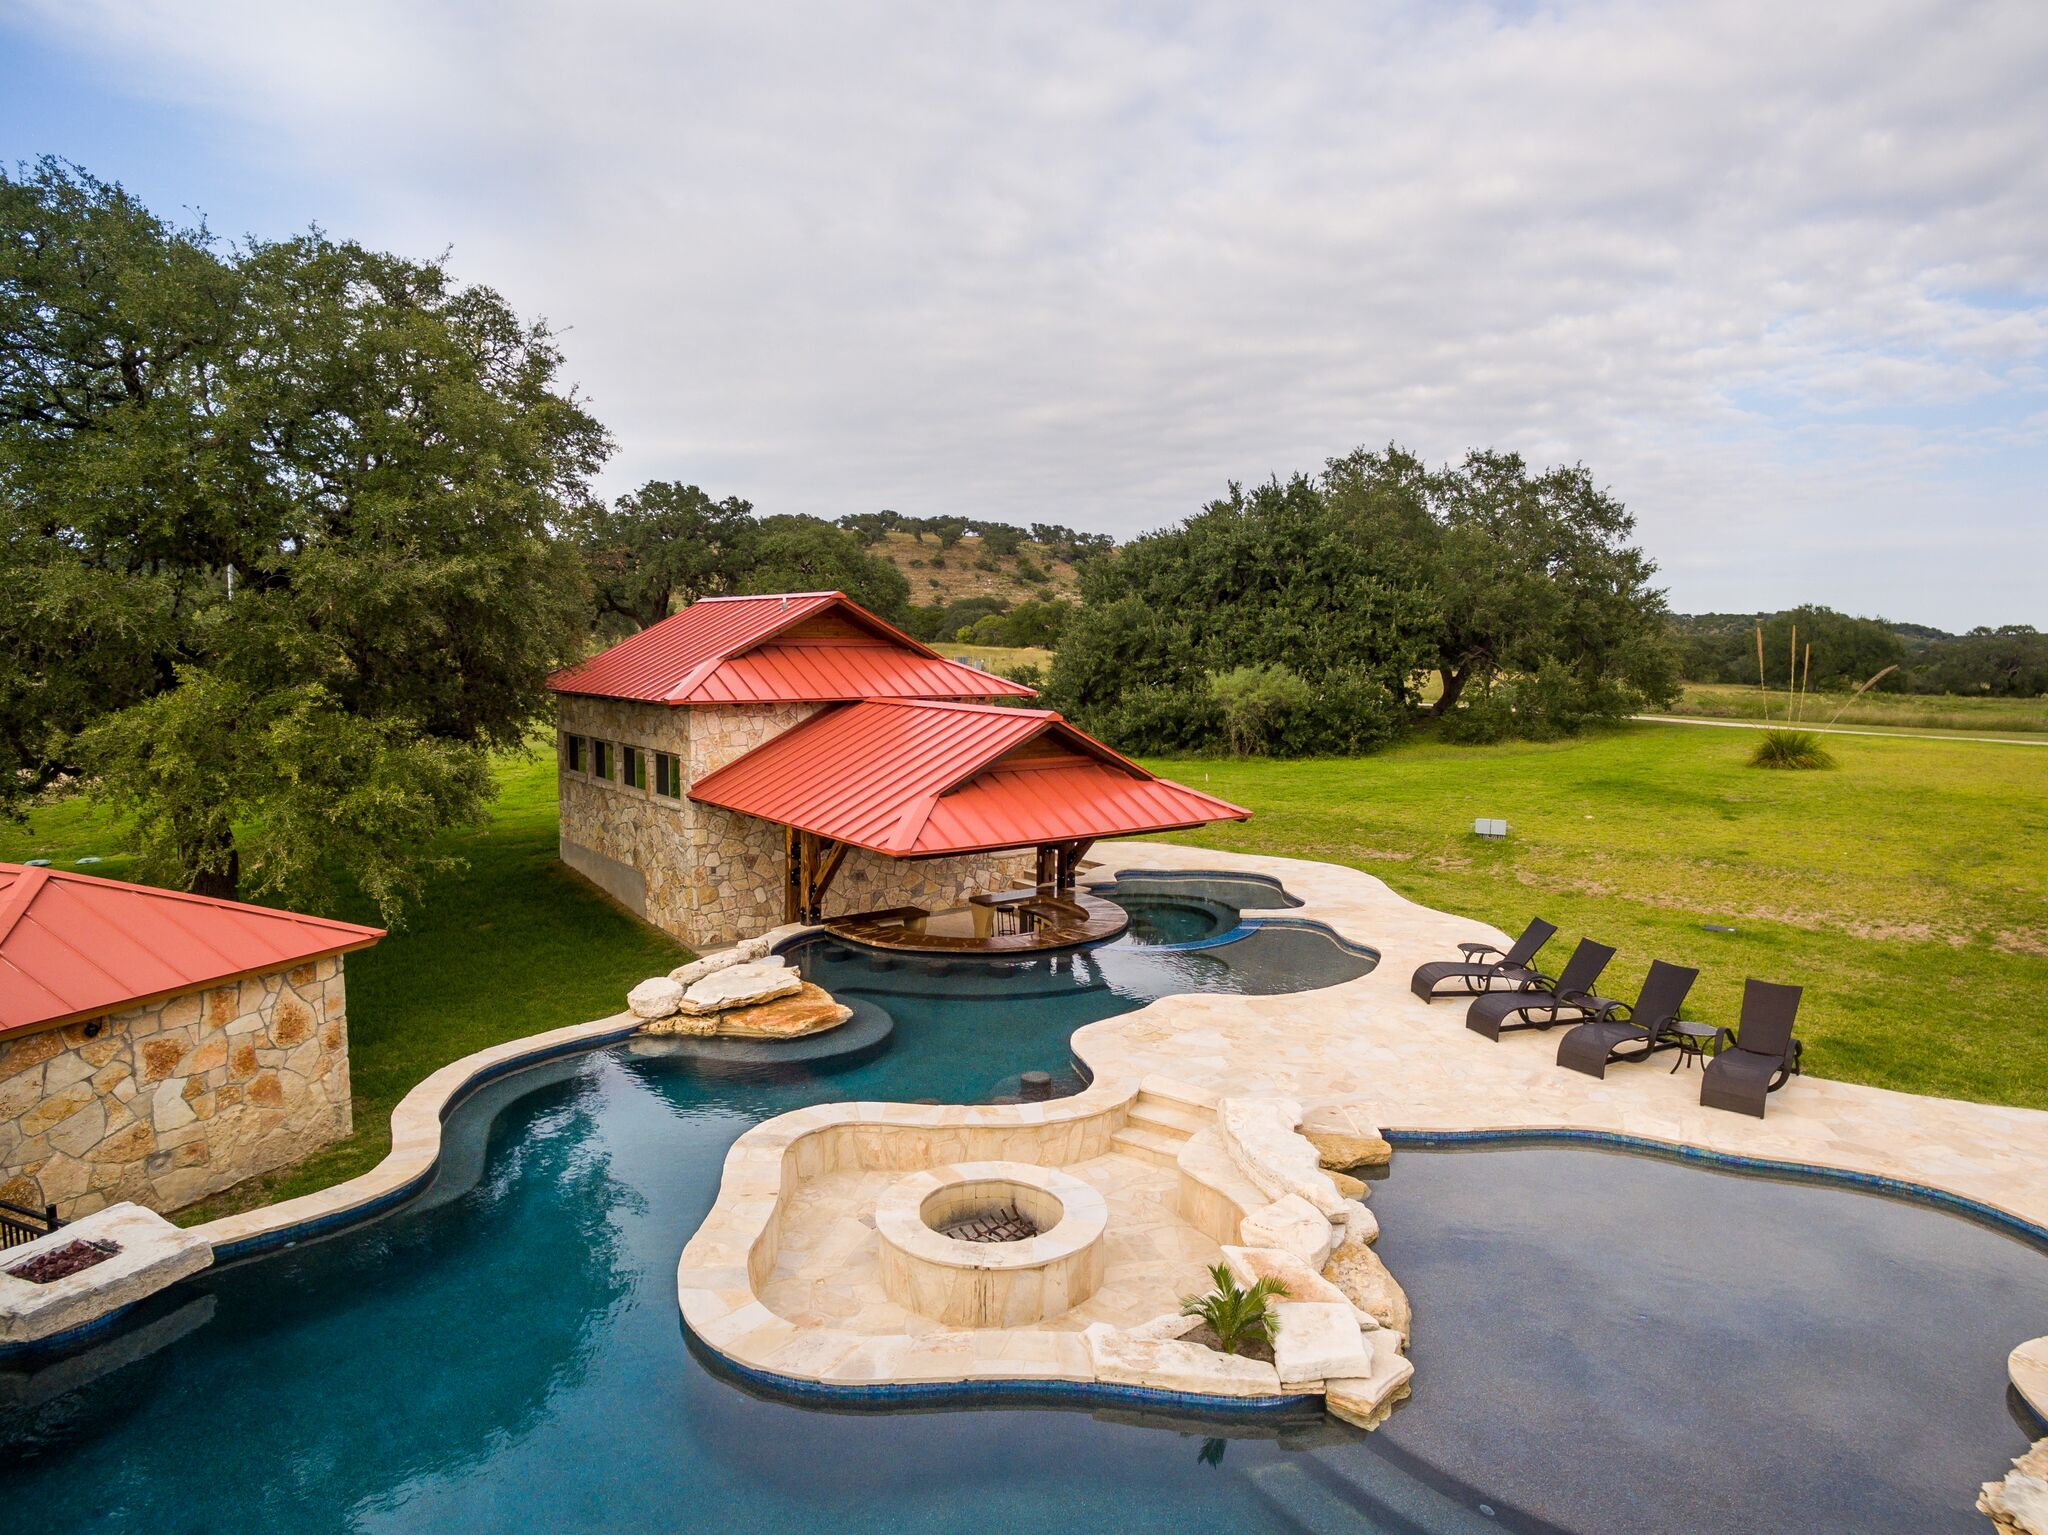 Outdoor Living Space in Texas Hill Country